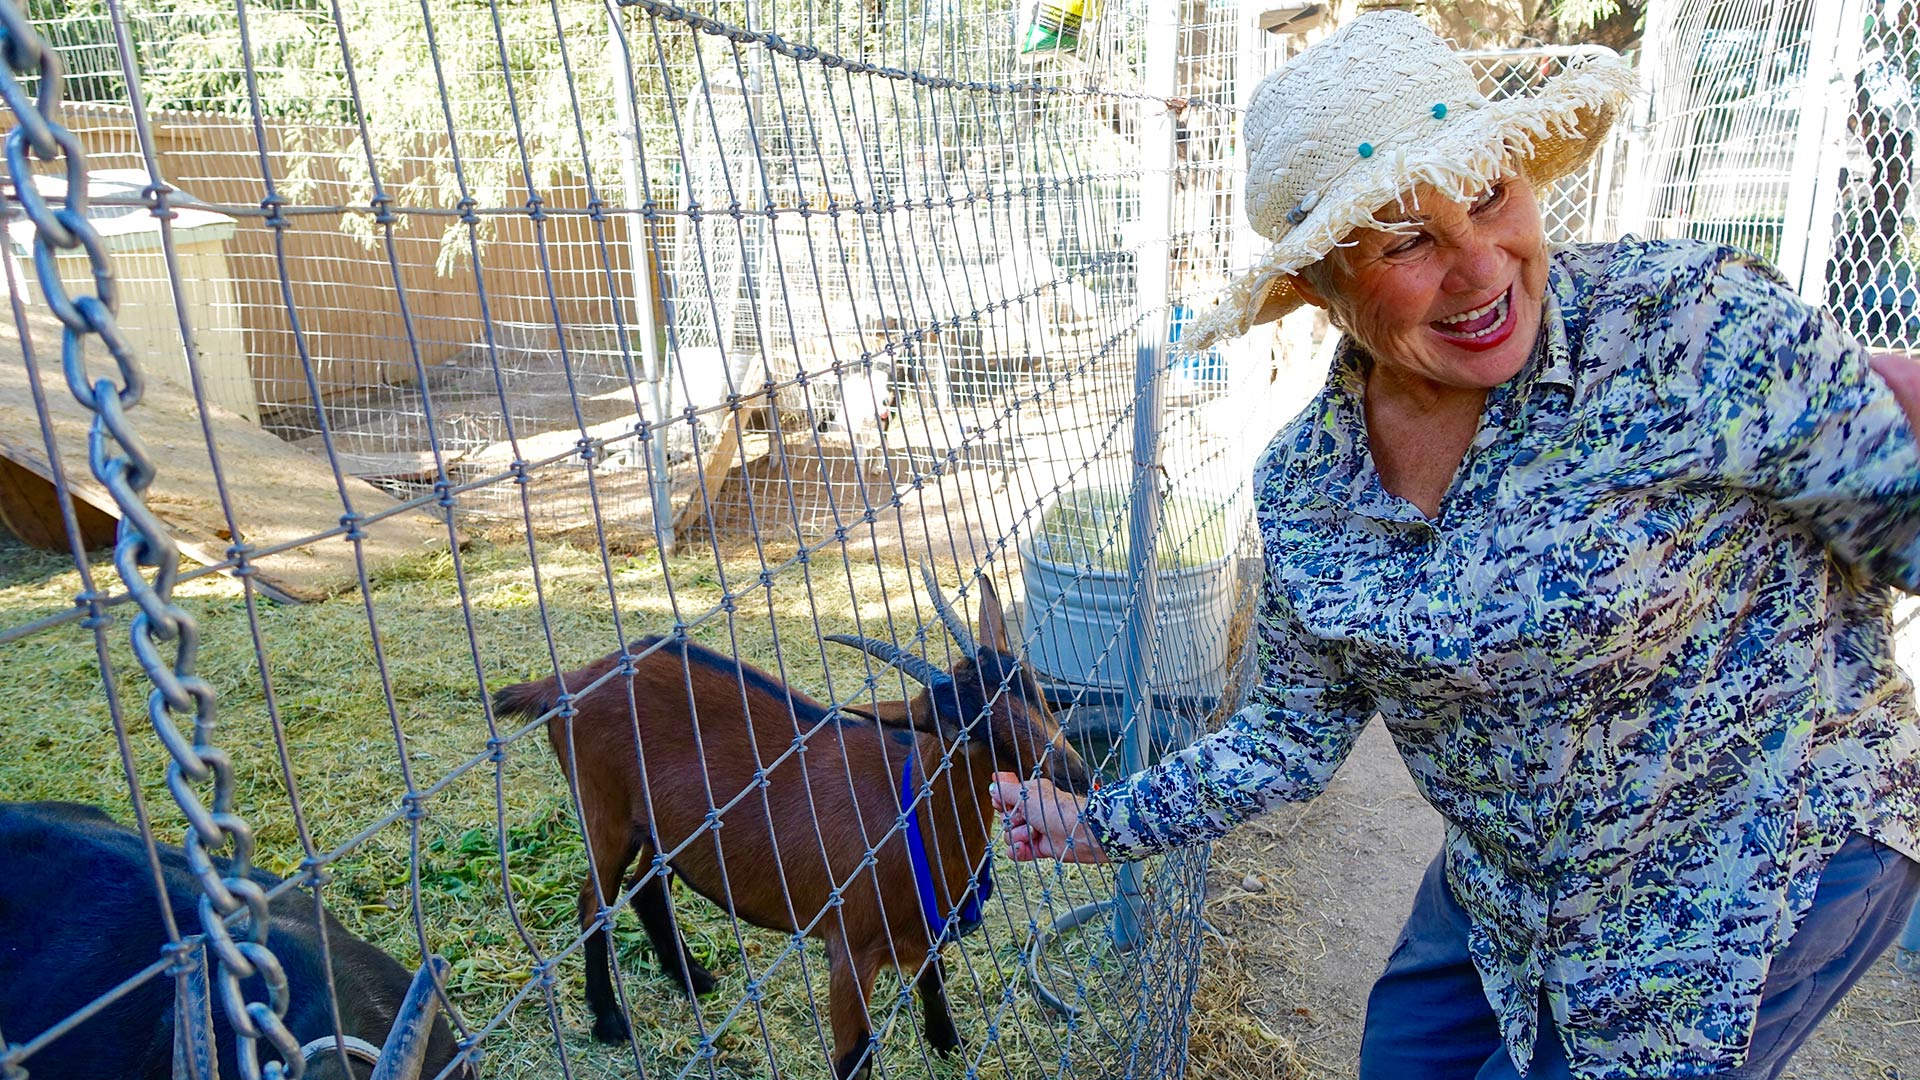 Angelina, a volunteer, coos to the goats in Russian.